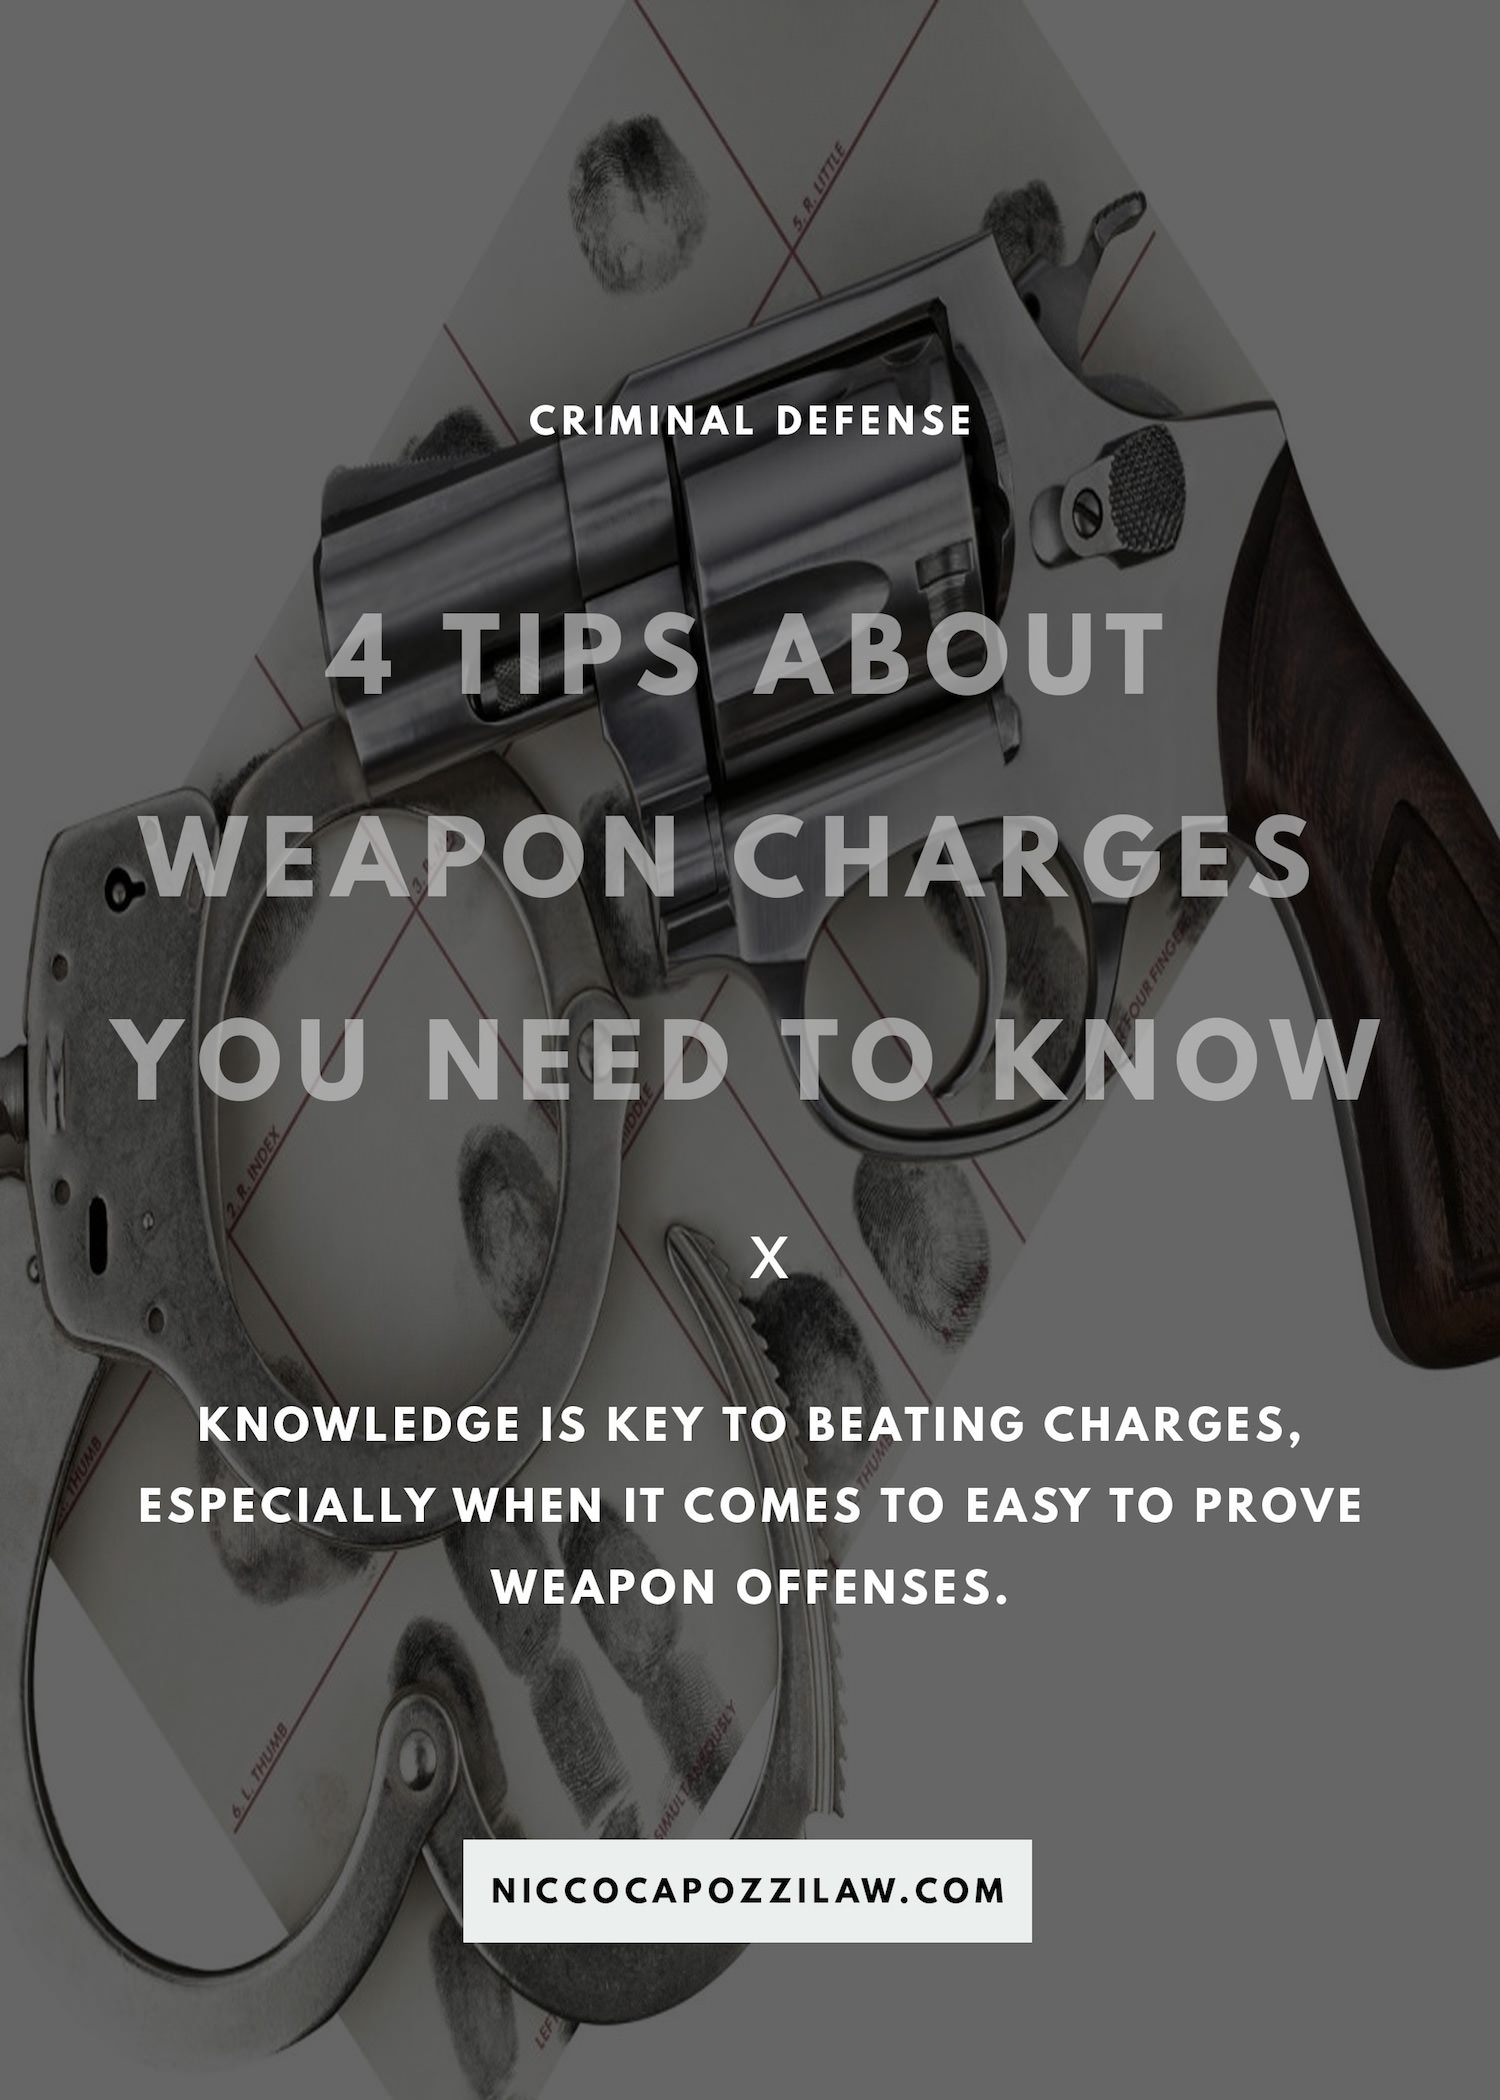 4 tips about weason charges you need to know.jpg